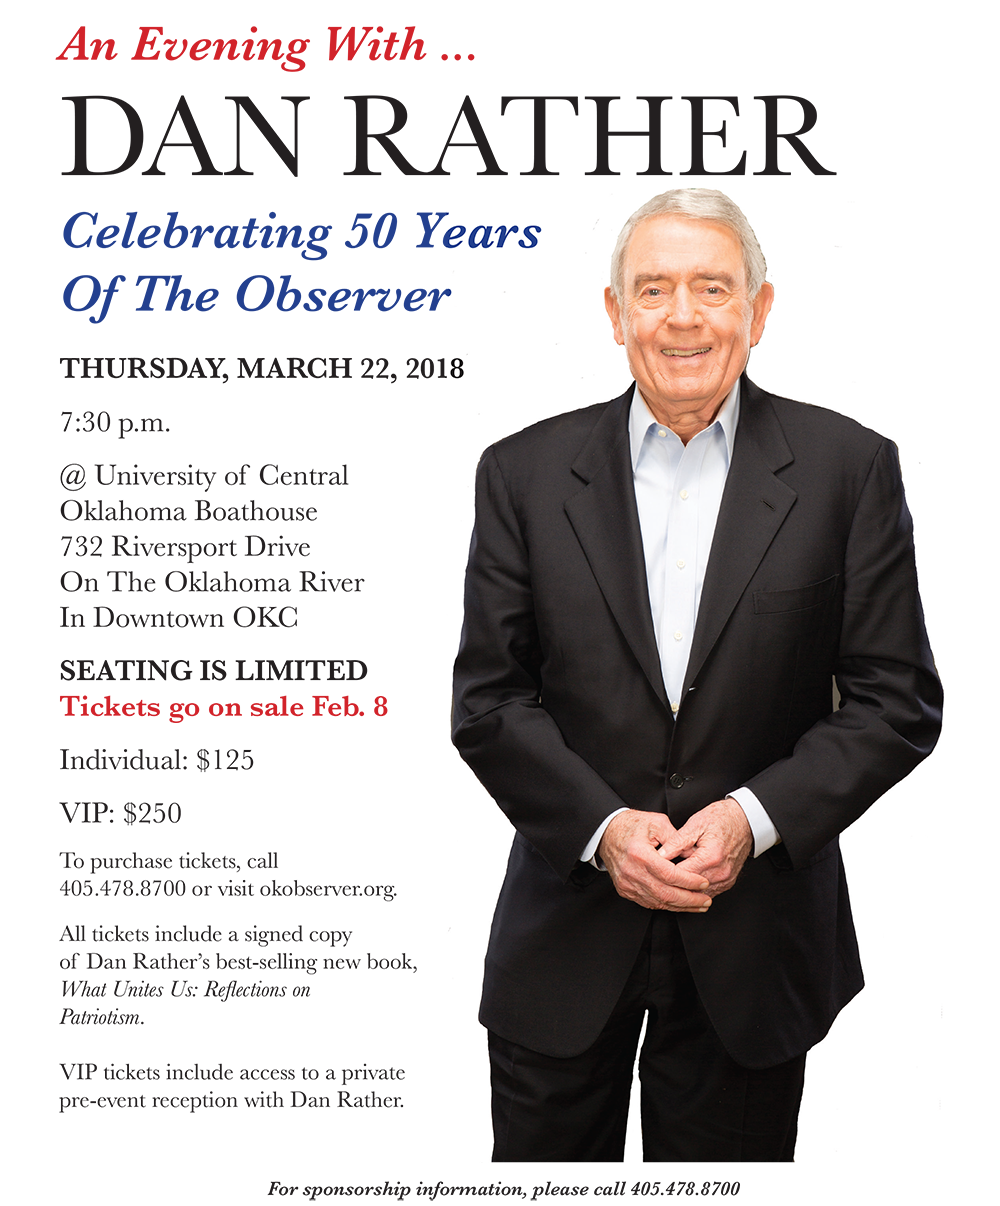 Dan Rather Program